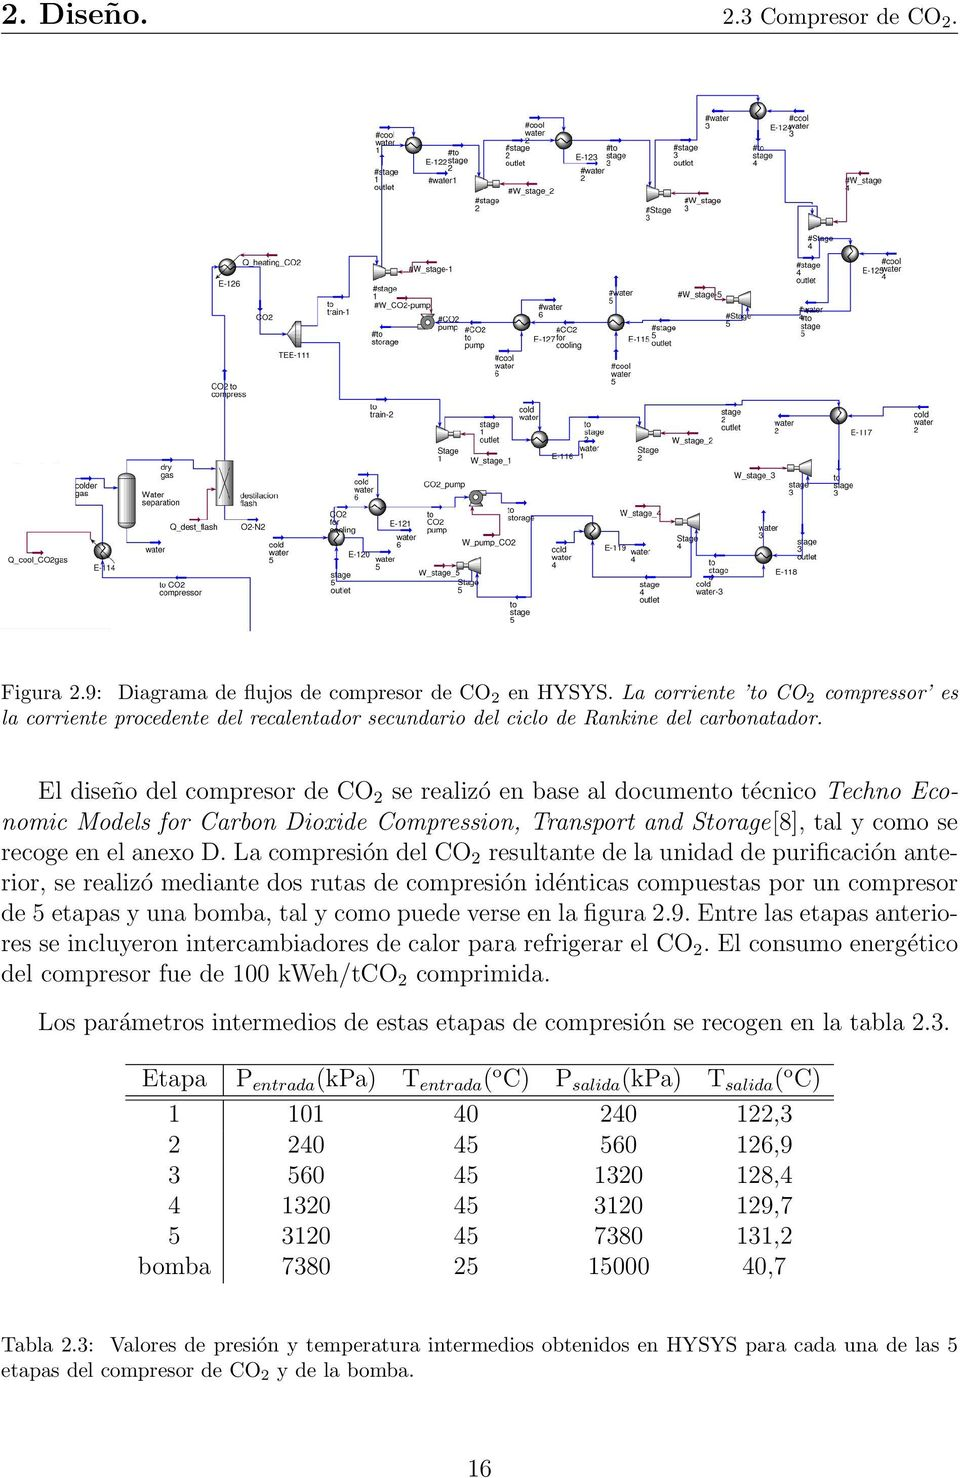 El diseño del compresor de CO 2 se realizó en base al documento técnico Techno Economic Models for Carbon Dioxide Compression, Transport and Storage[8], tal y como se recoge en el anexo D.